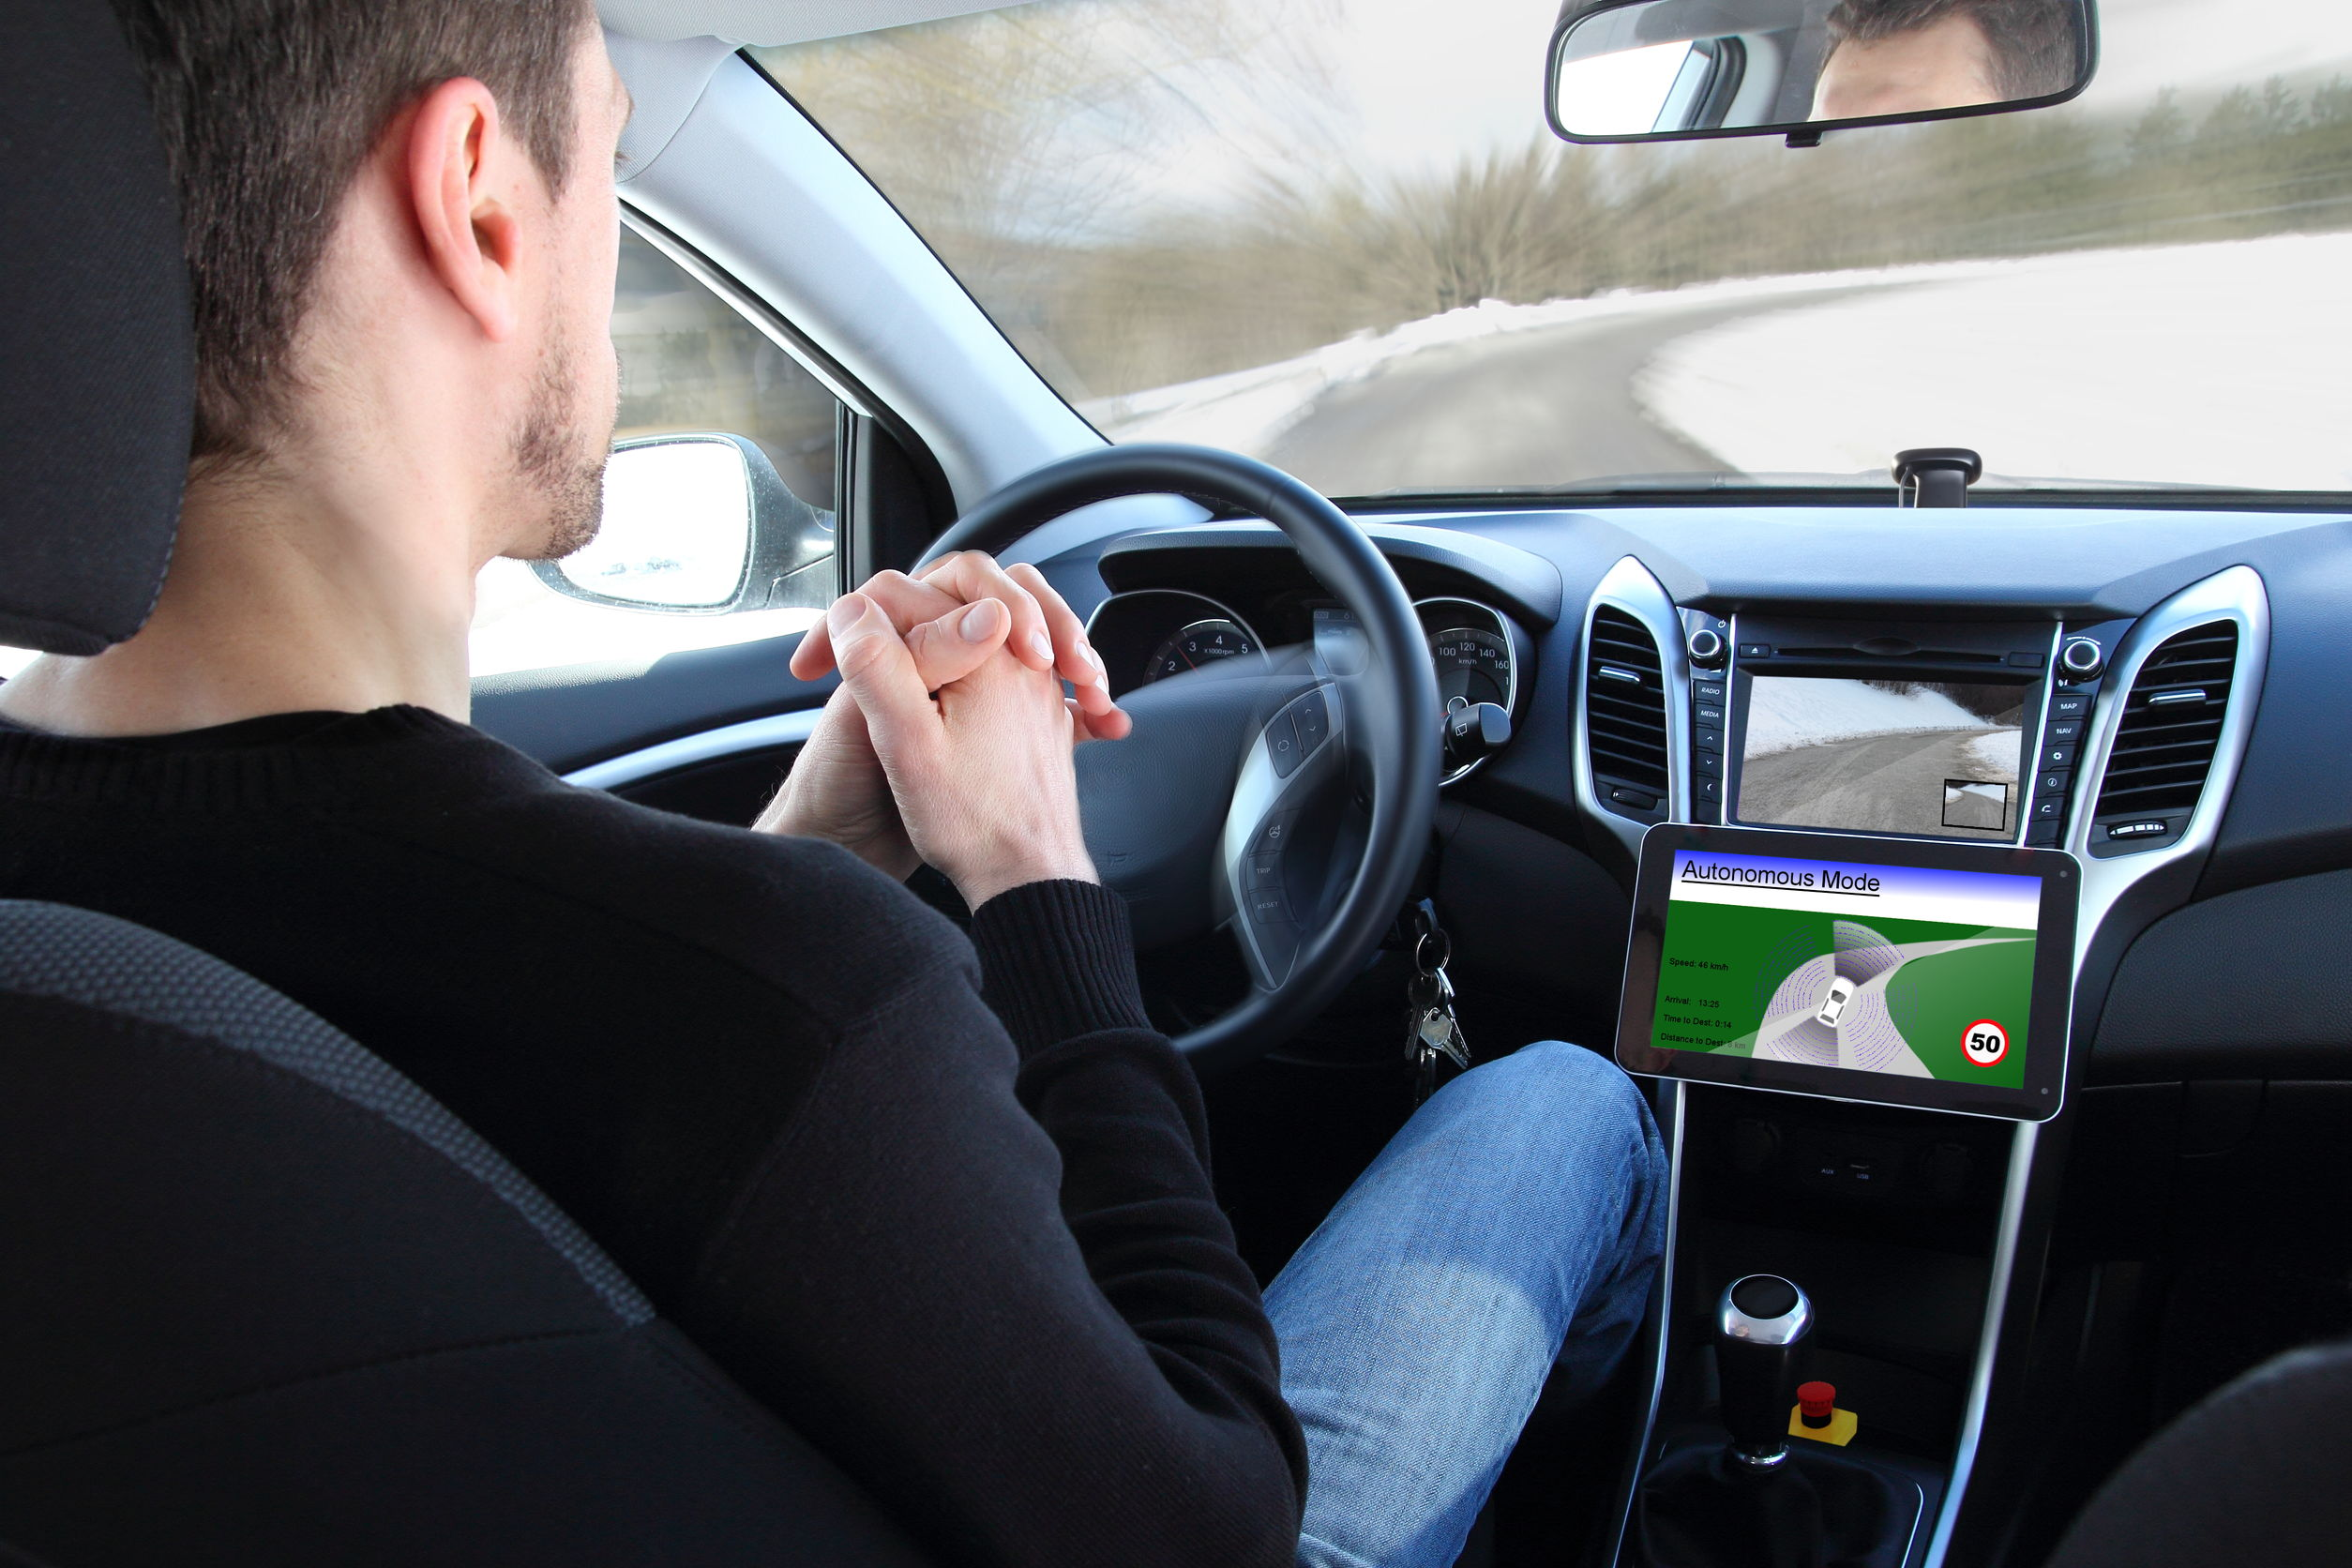 Driverless Cars – Who will Foot the Auto Insurance Bill?